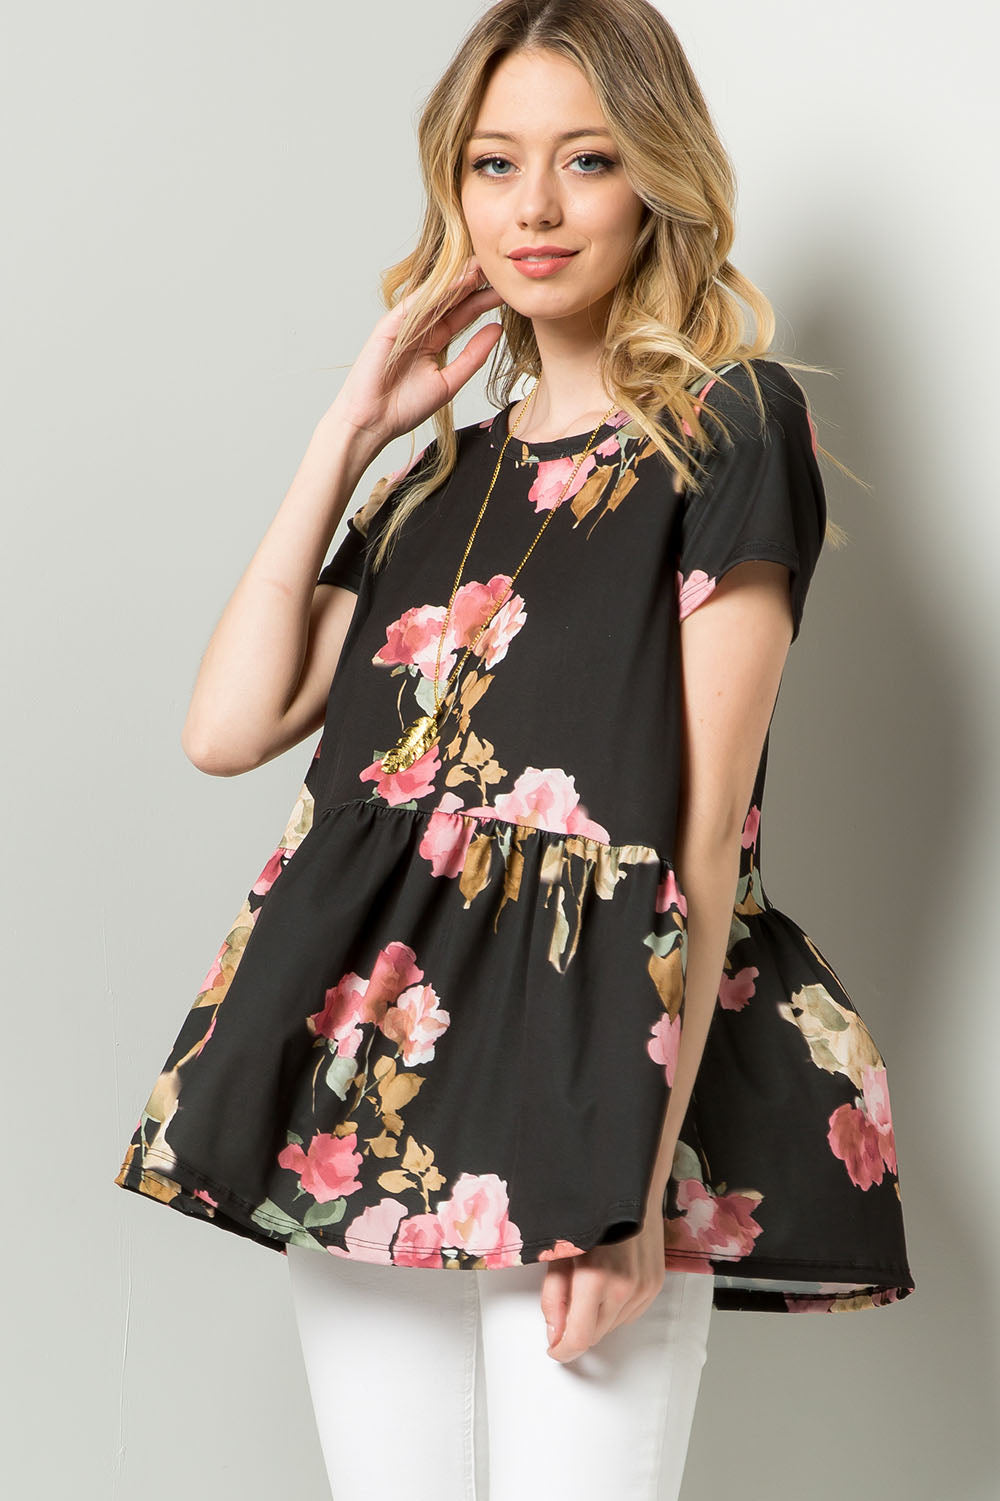 Floral Print Peplum Swing Top